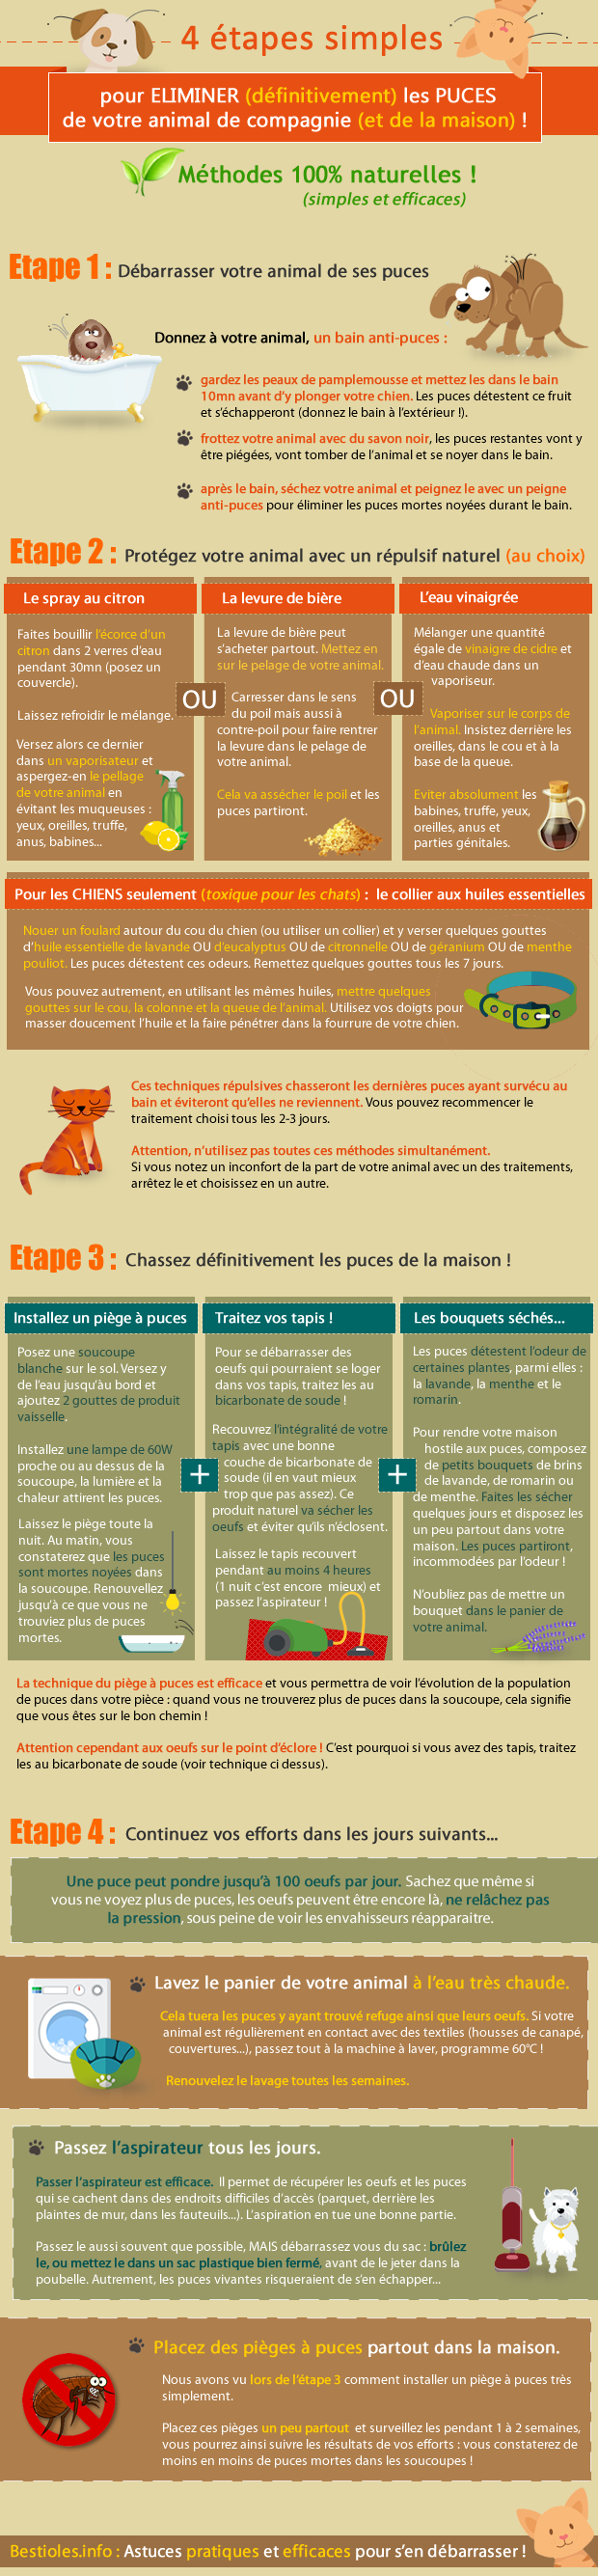 infographie 4 tapes simples pour liminer les puces de votre animal et de la maison au. Black Bedroom Furniture Sets. Home Design Ideas